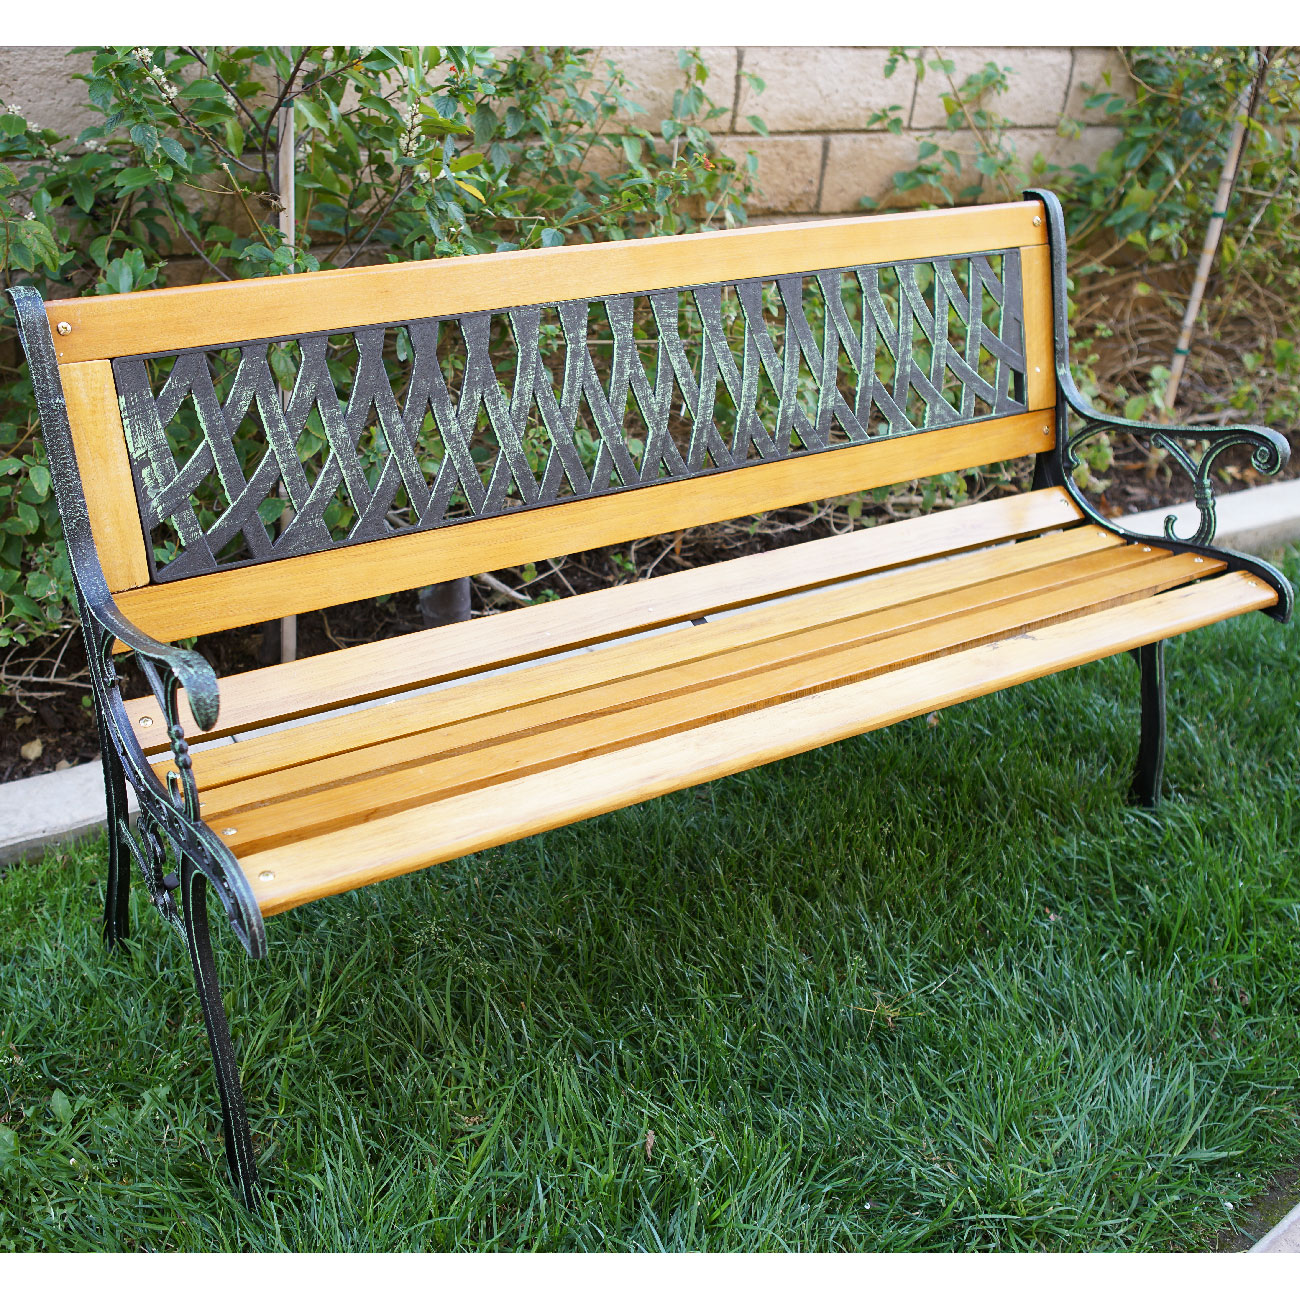 Outdoor 50 patio porch deck hardwood cast iron garden bench chair love seat new Yard bench